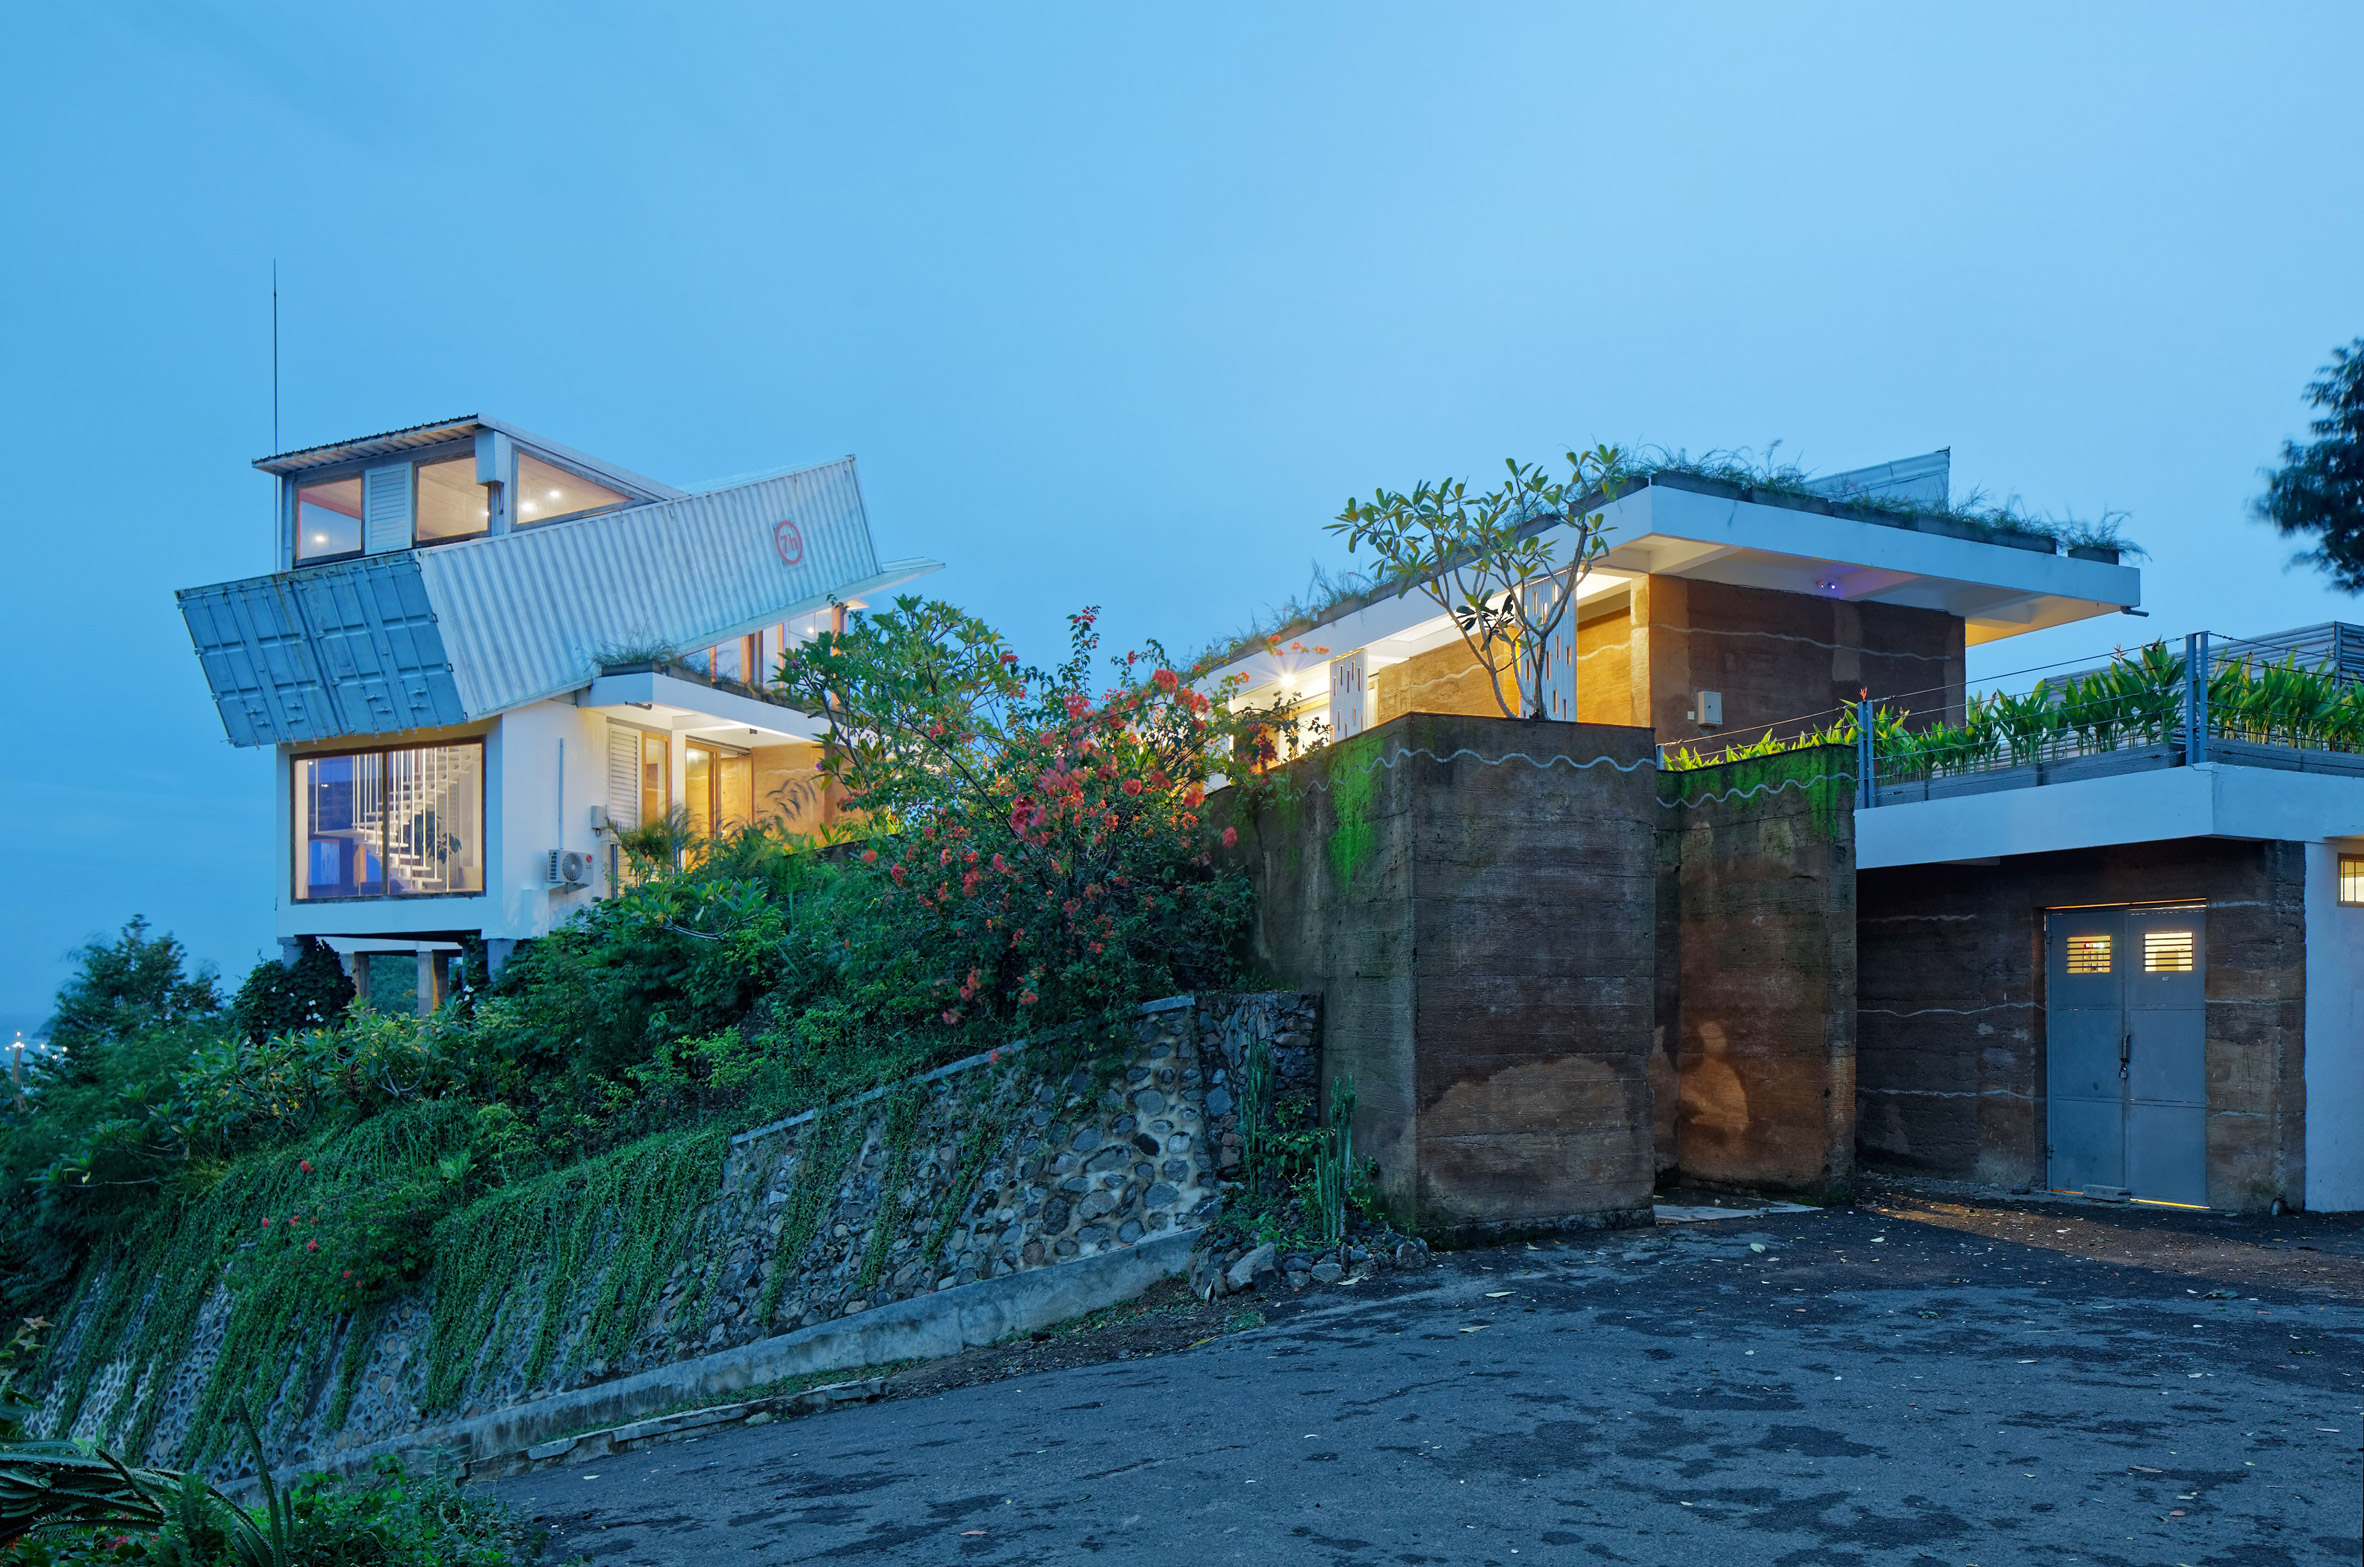 Budi Pradono tops hillside house in Lombok with tilted shipping container